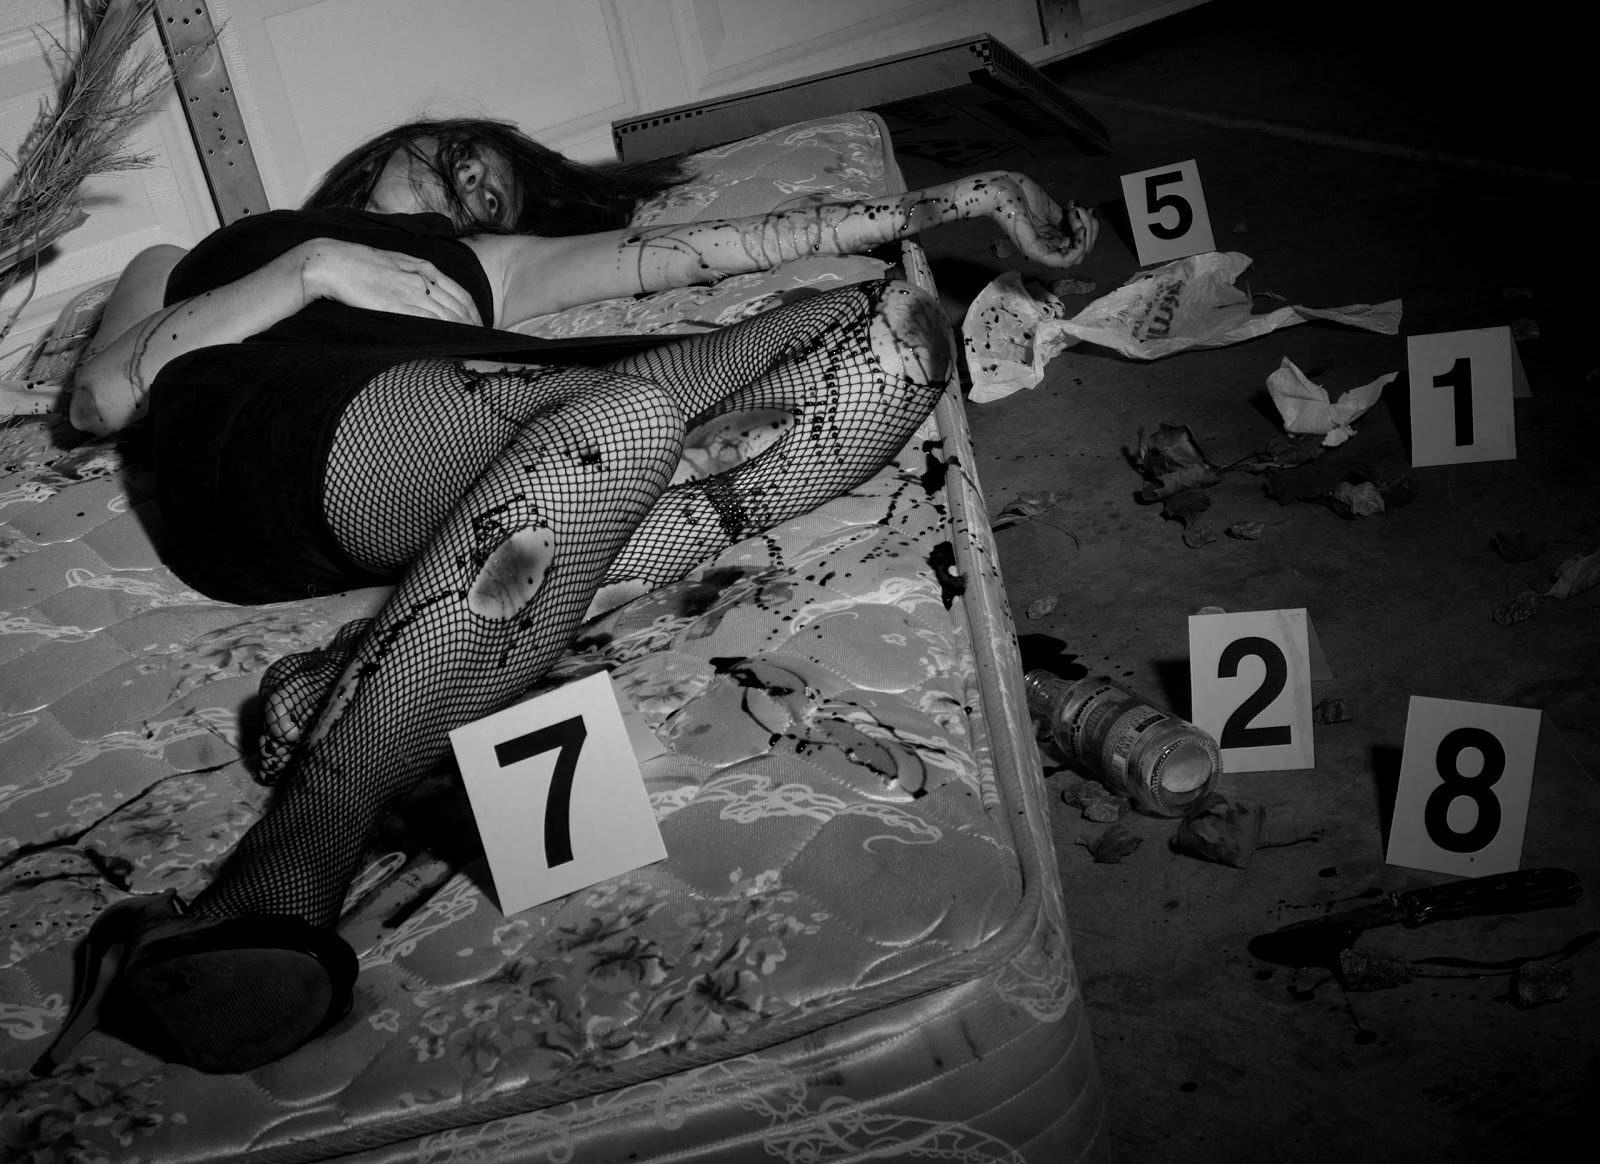 Famous Murders Crime Scene Photos http://kalberto143.blogspot.com/2011/01/boc-week-2-crime-scene-photoshoot.html